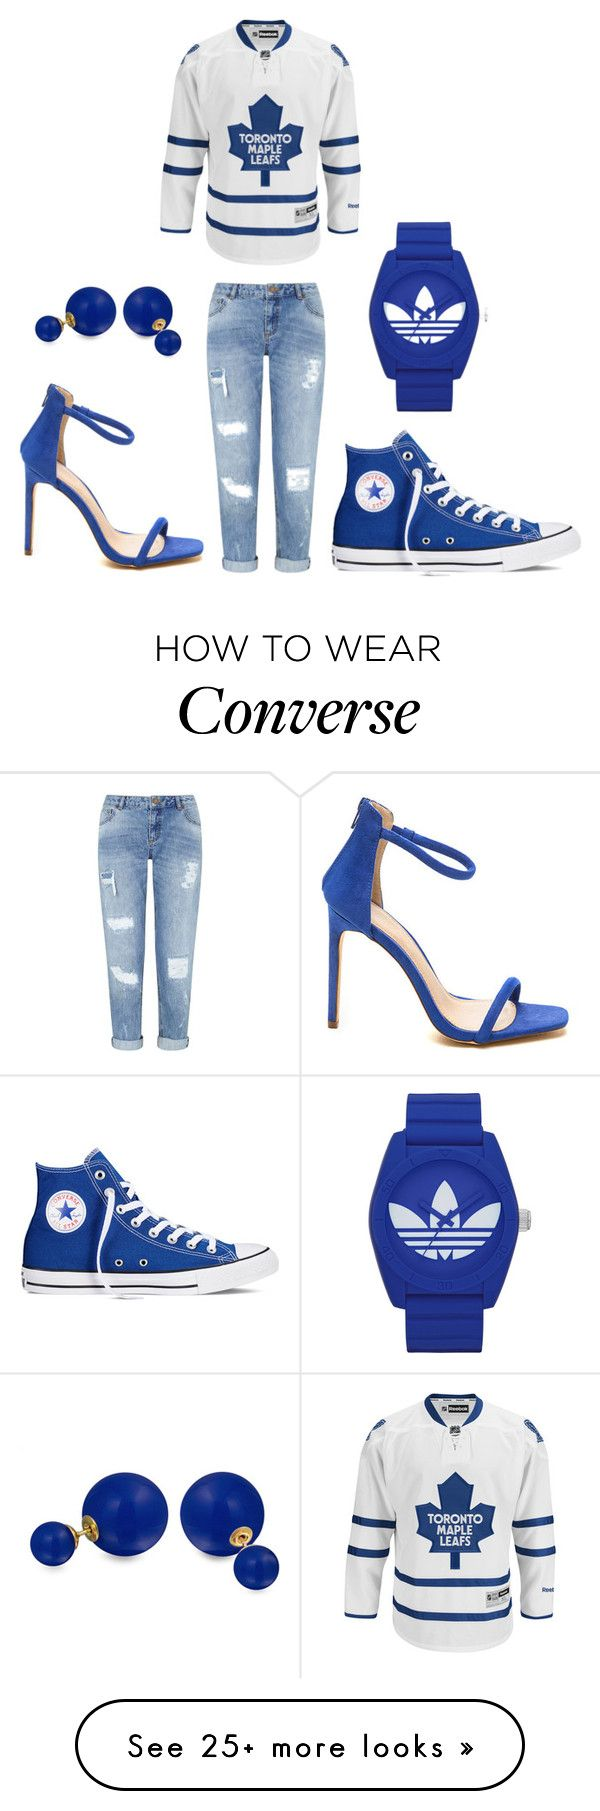 """Toronto Maple Leafs"" by hisabella on Polyvore featuring Reebok, adidas, Converse, Miss Selfridge and Bling Jewelry"